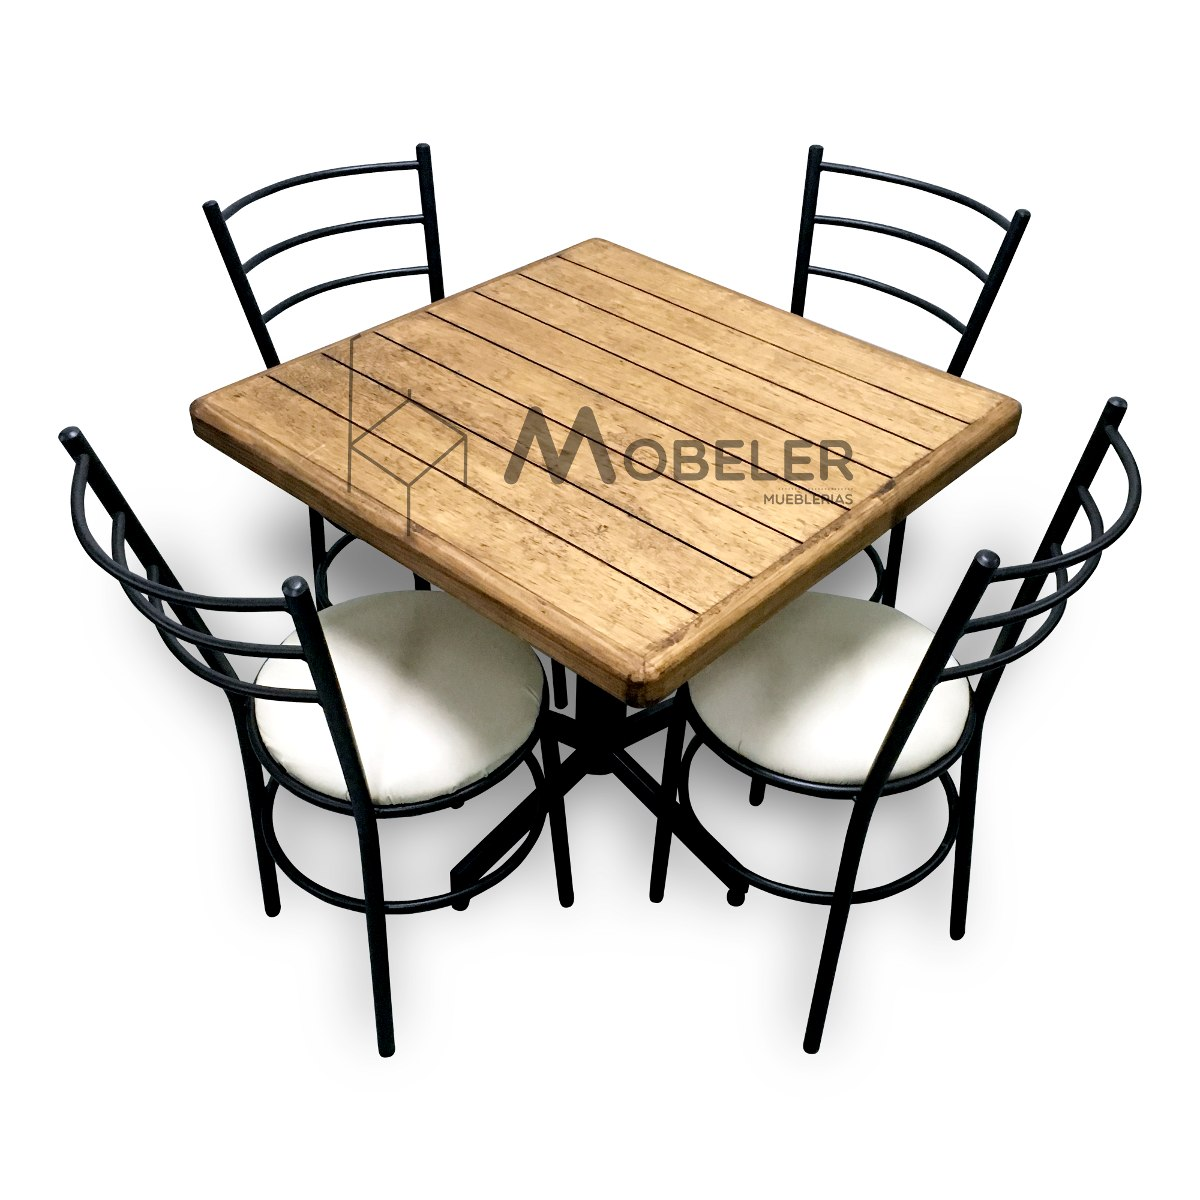 Mesa de madera sillas para restaurante bar cafeter a for Sillas mercado libre